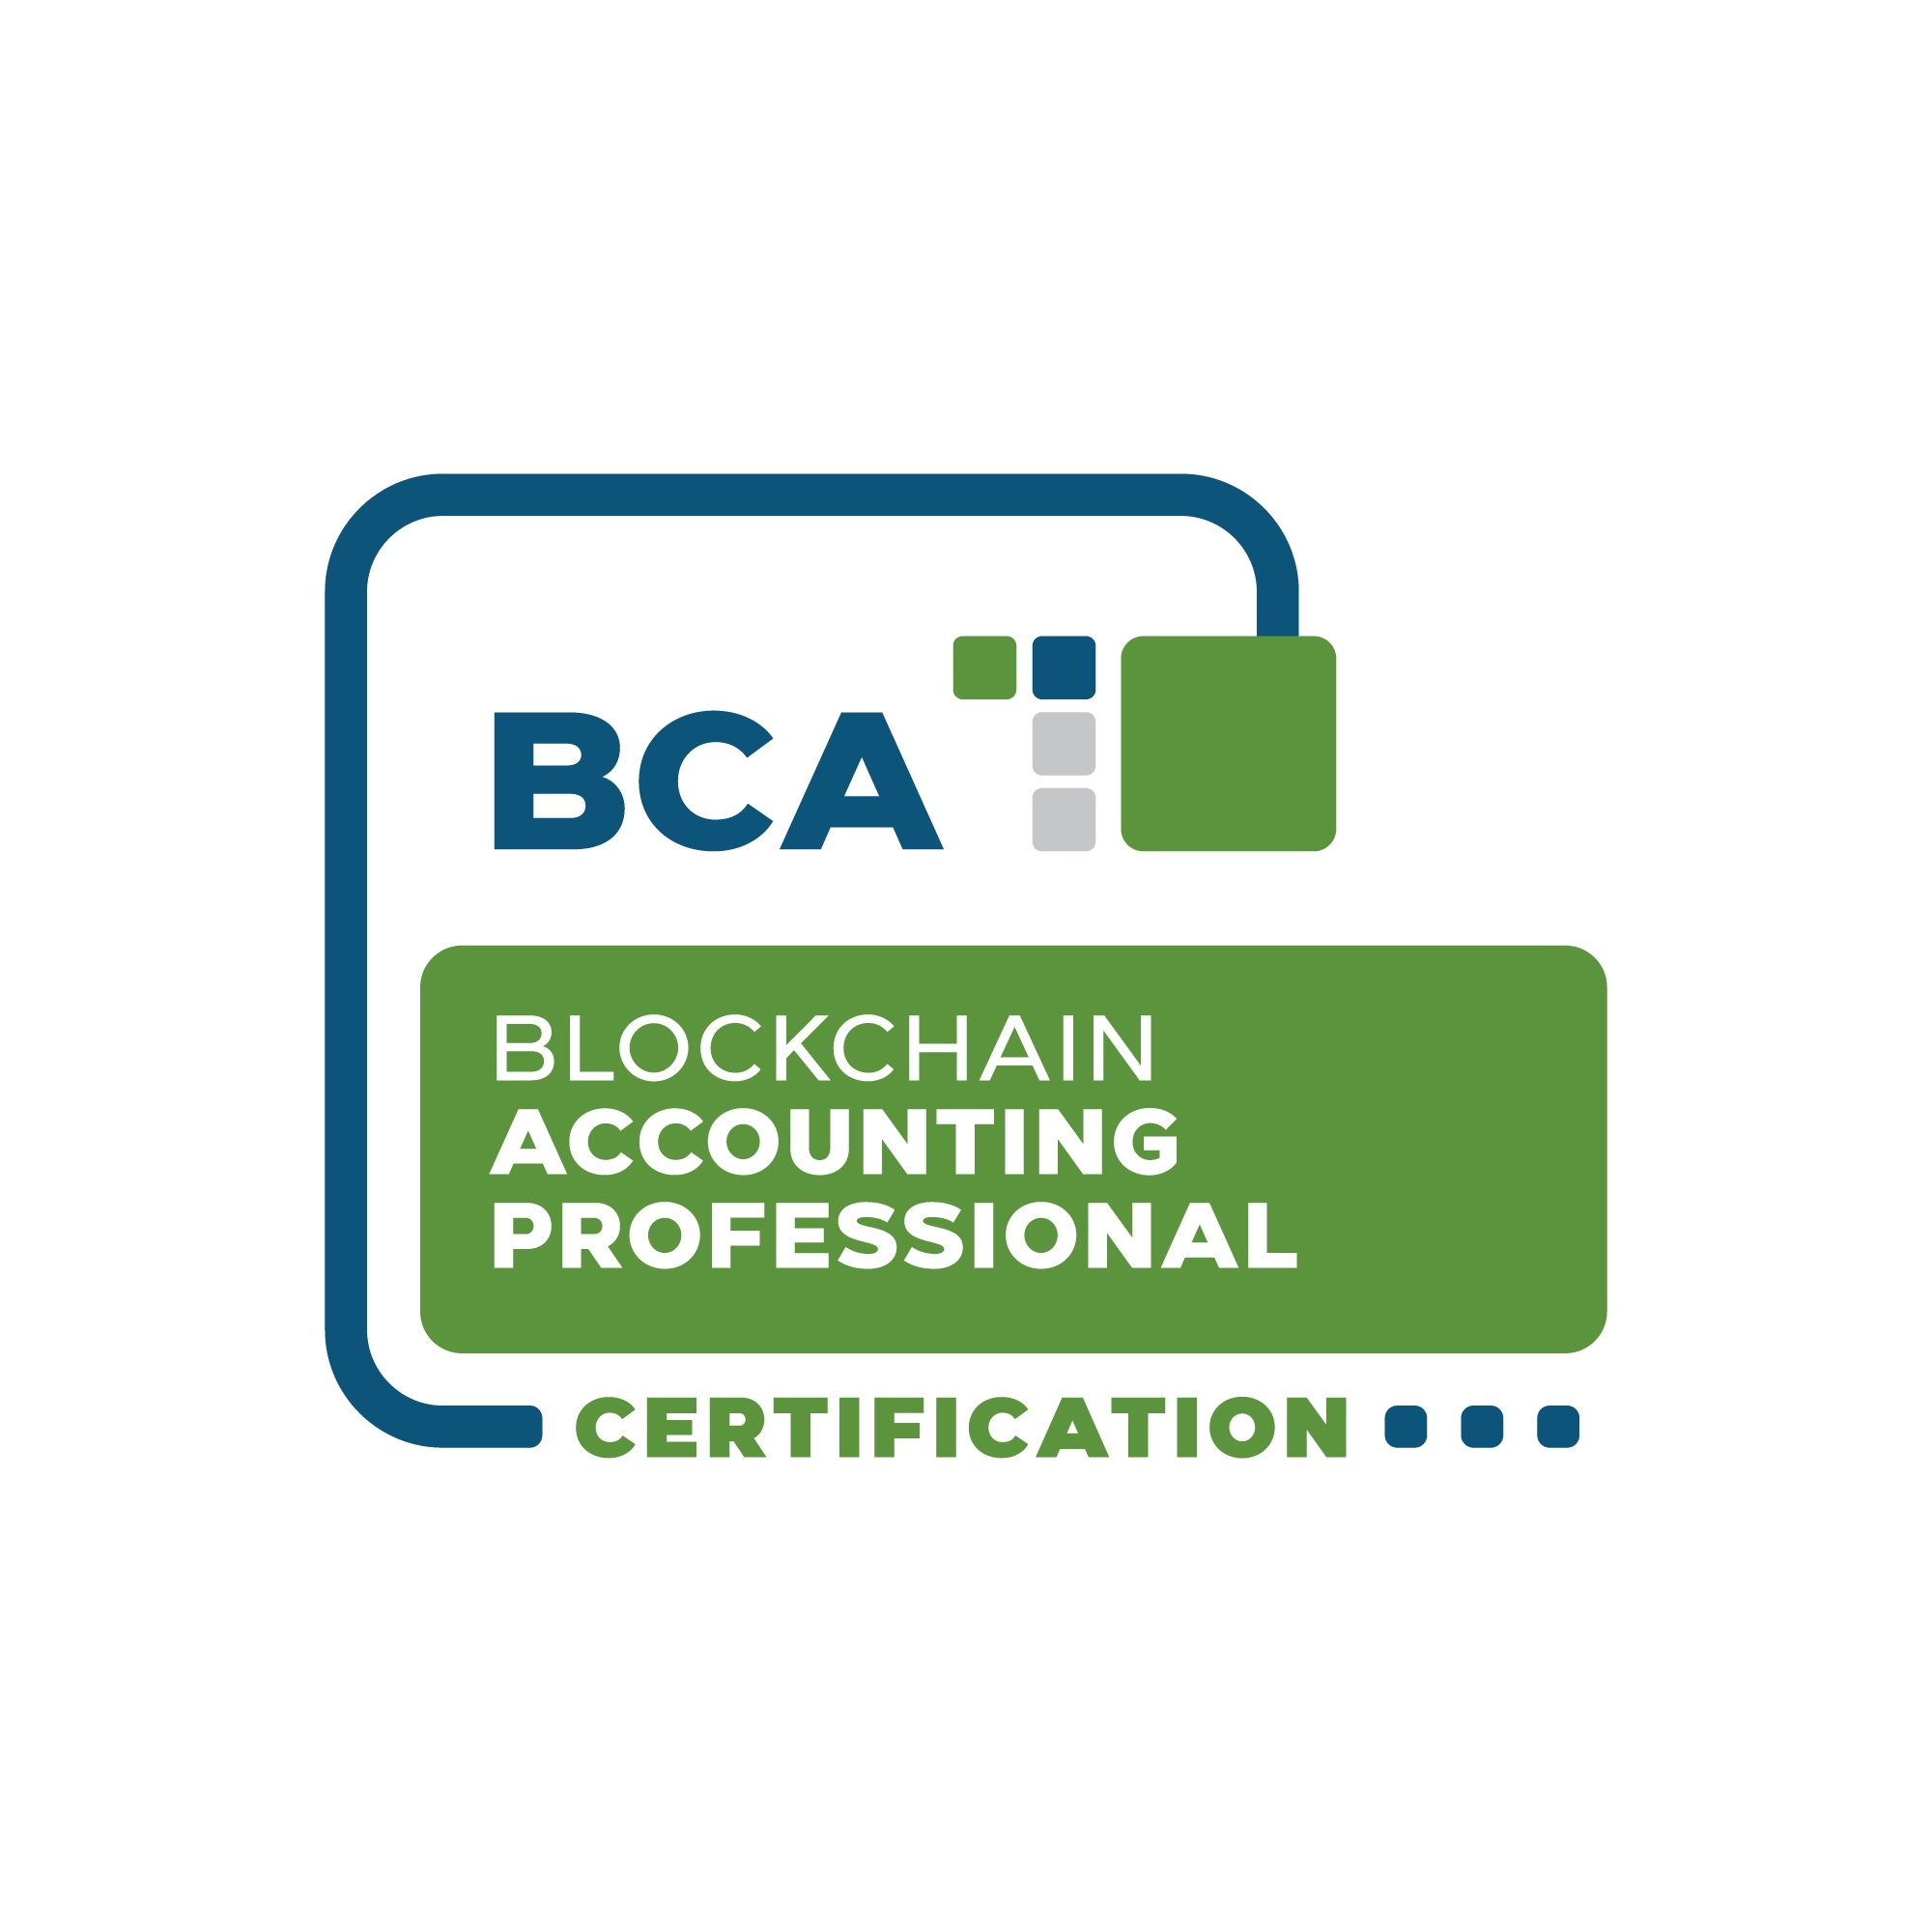 Blockchain Accounting Professional Certification digital badge from the Blockchain Certification Association